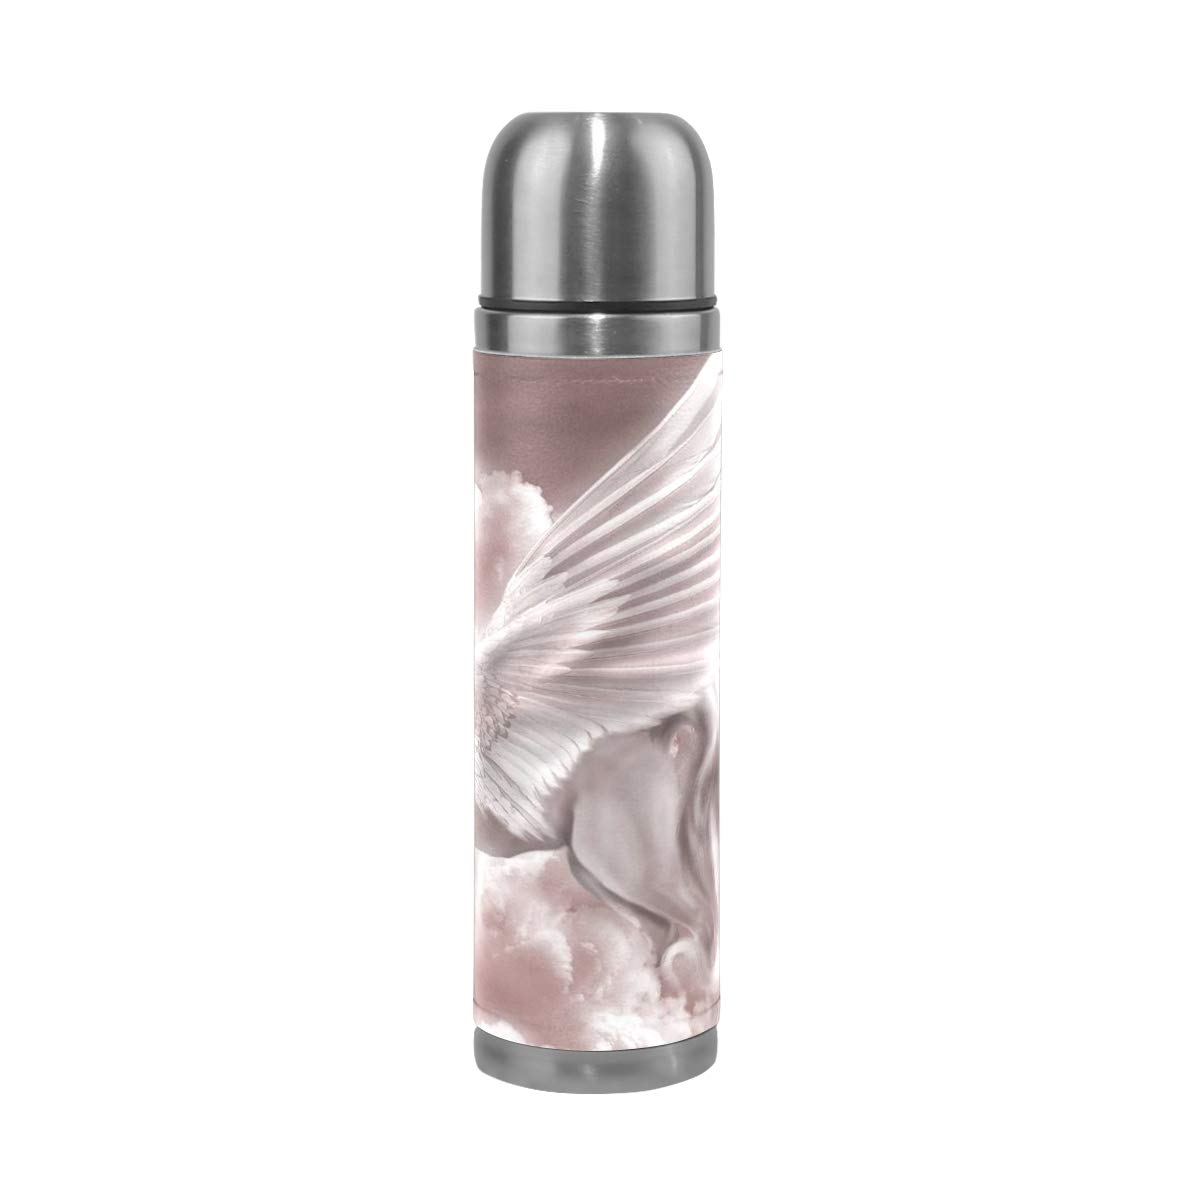 OuLian Water Bottle Pegasus & Unicorn Fantasy Animals Sports Insulated Stainless Steel Water Bottles Leak Proof Double Wall Thermos Leather Cover 17 Oz